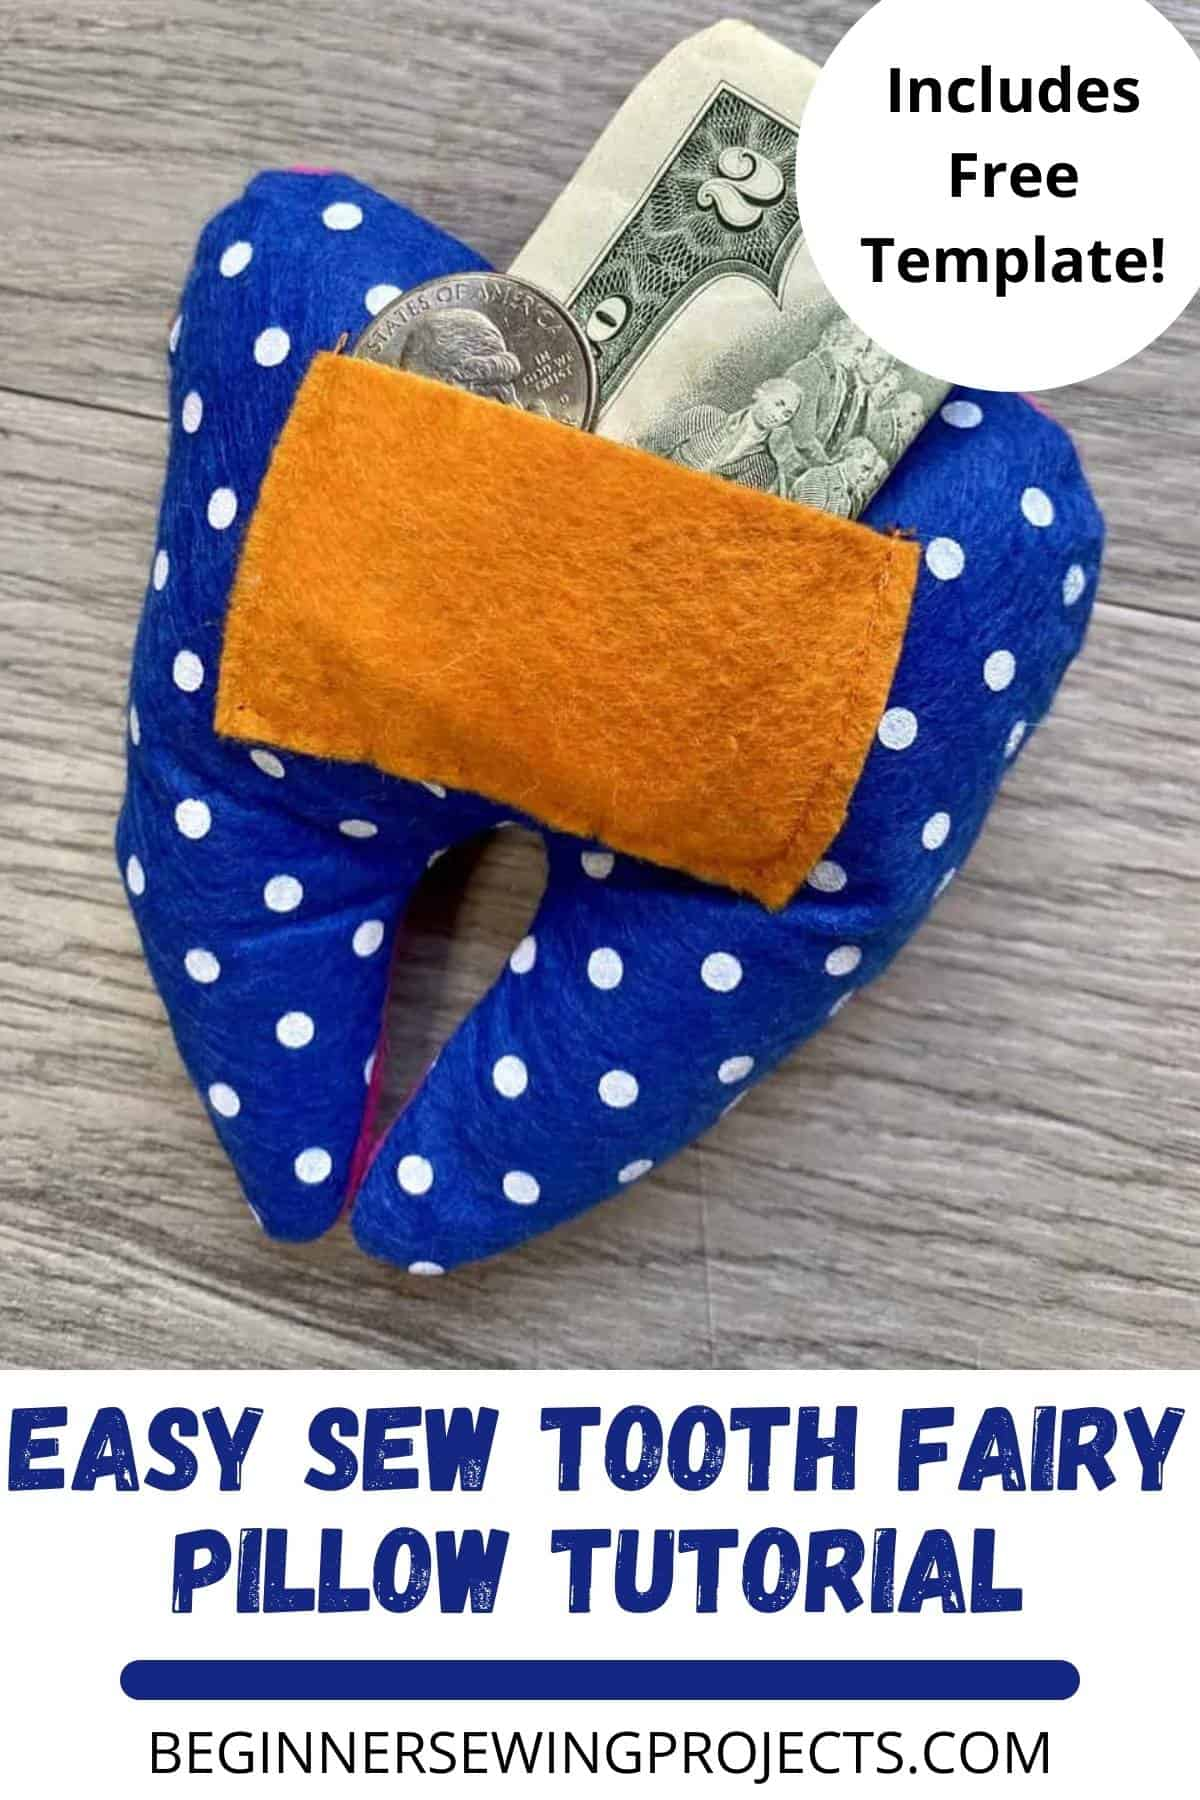 Easy Sew Tooth Fairy Pillow Tutorial